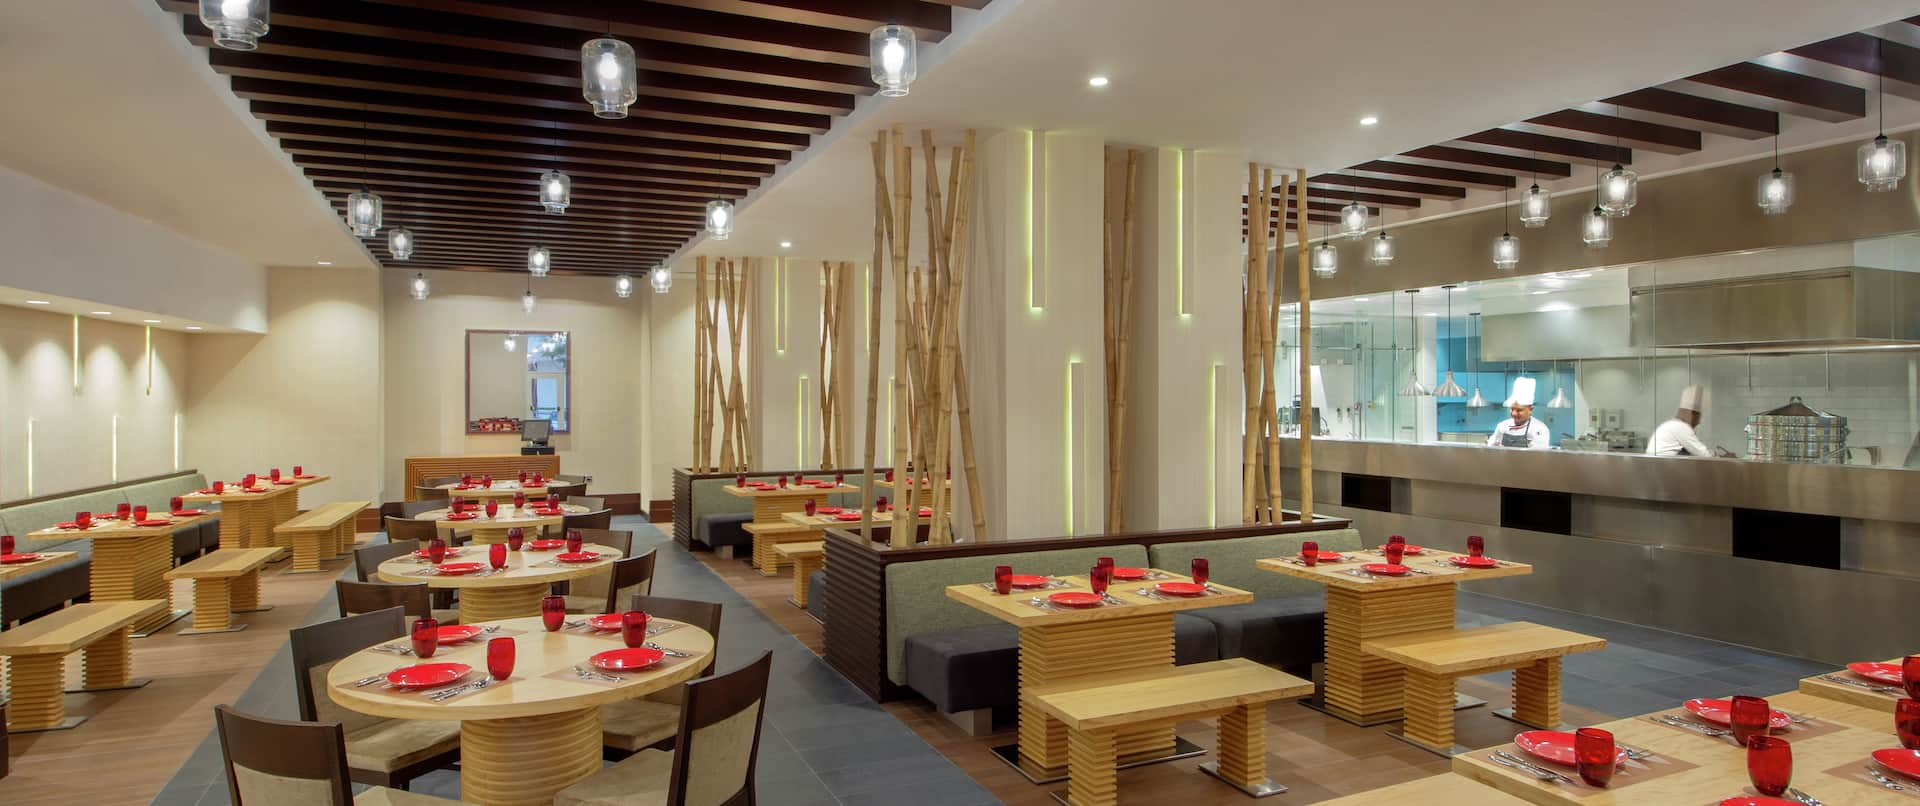 Indo Chin restaurant,  indian chinese restaurant with show cooking kitchen